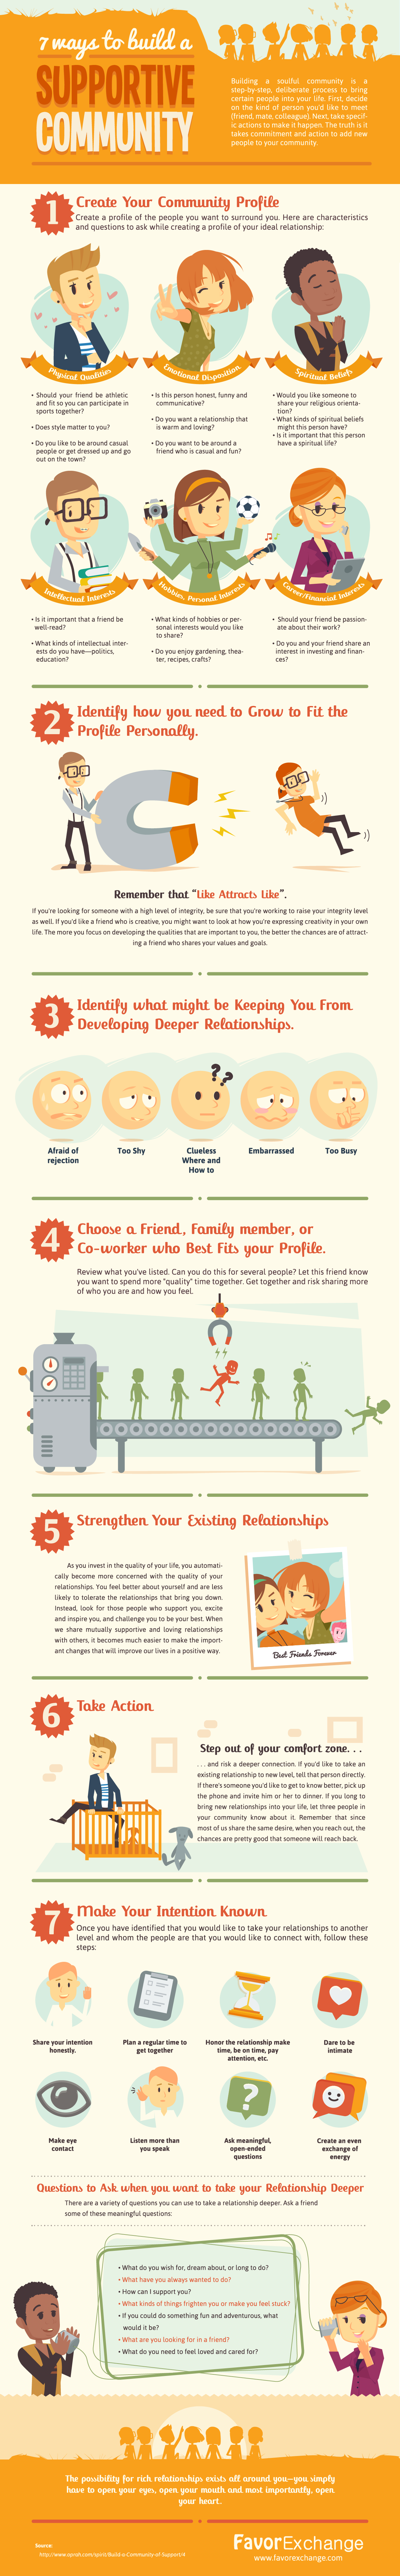 infographic: 7 Ways to Build a Supportive Community